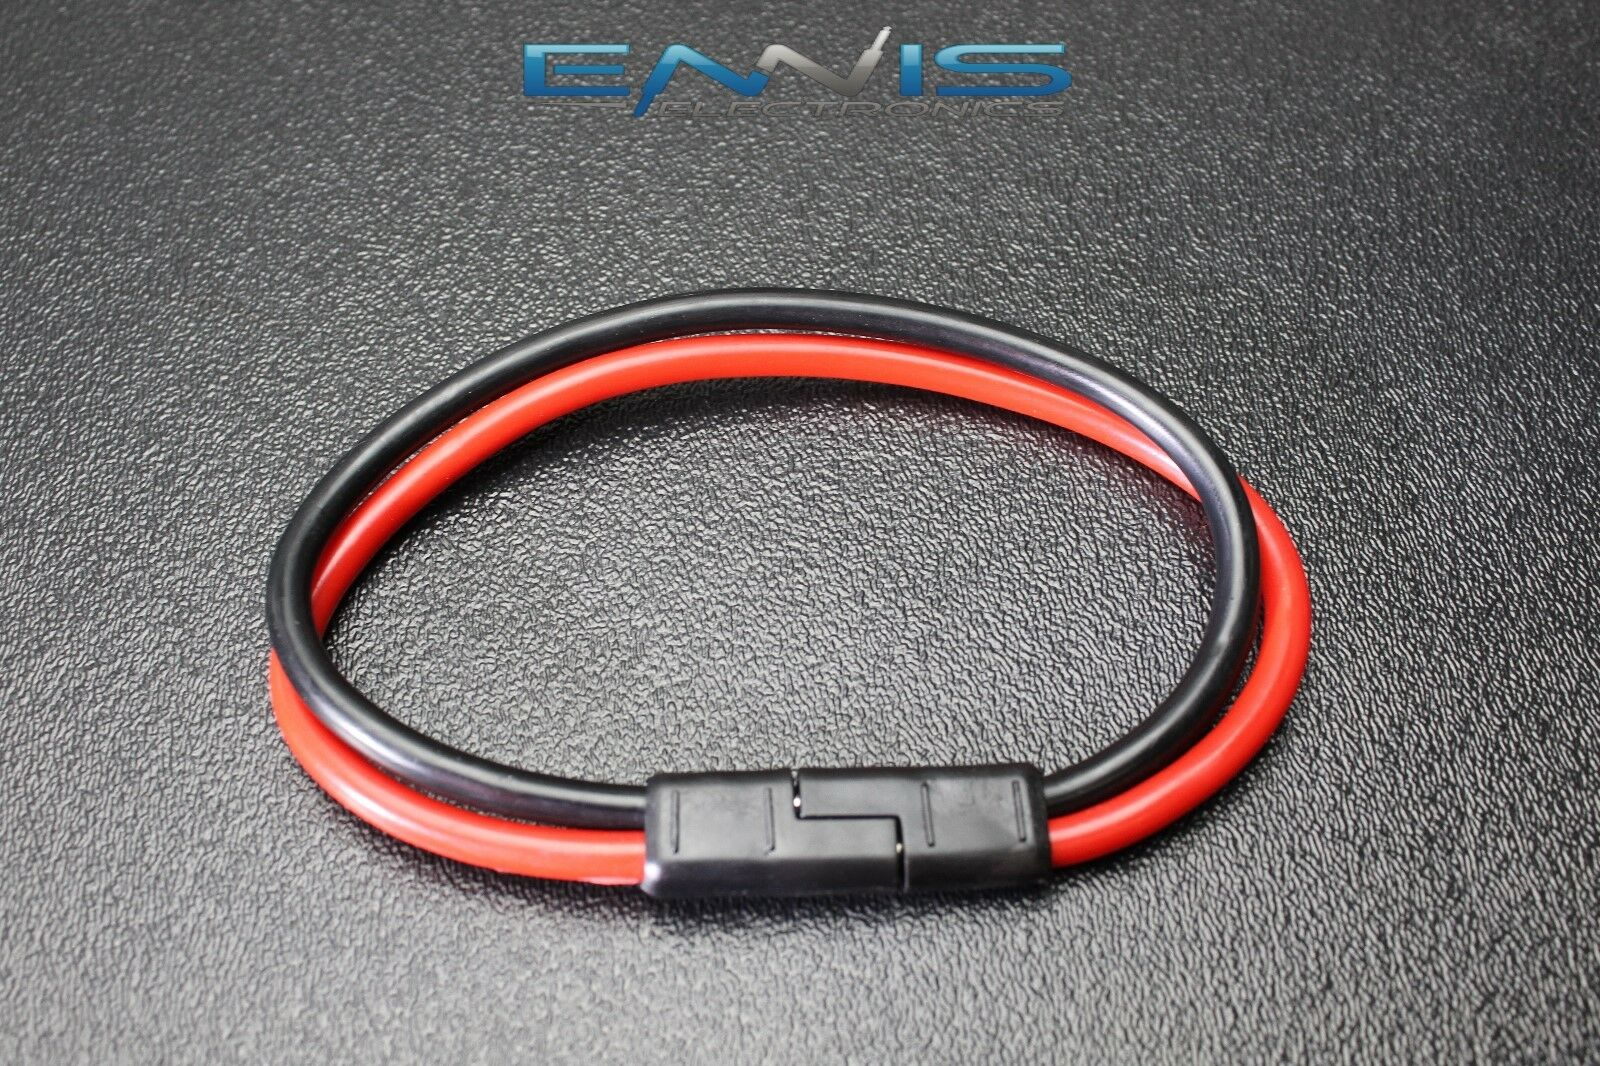 hight resolution of  1 10 gauge quick disconnect 2 pin 10 lead polarized wire harness aqk 12 10bg 1 of 4free shipping